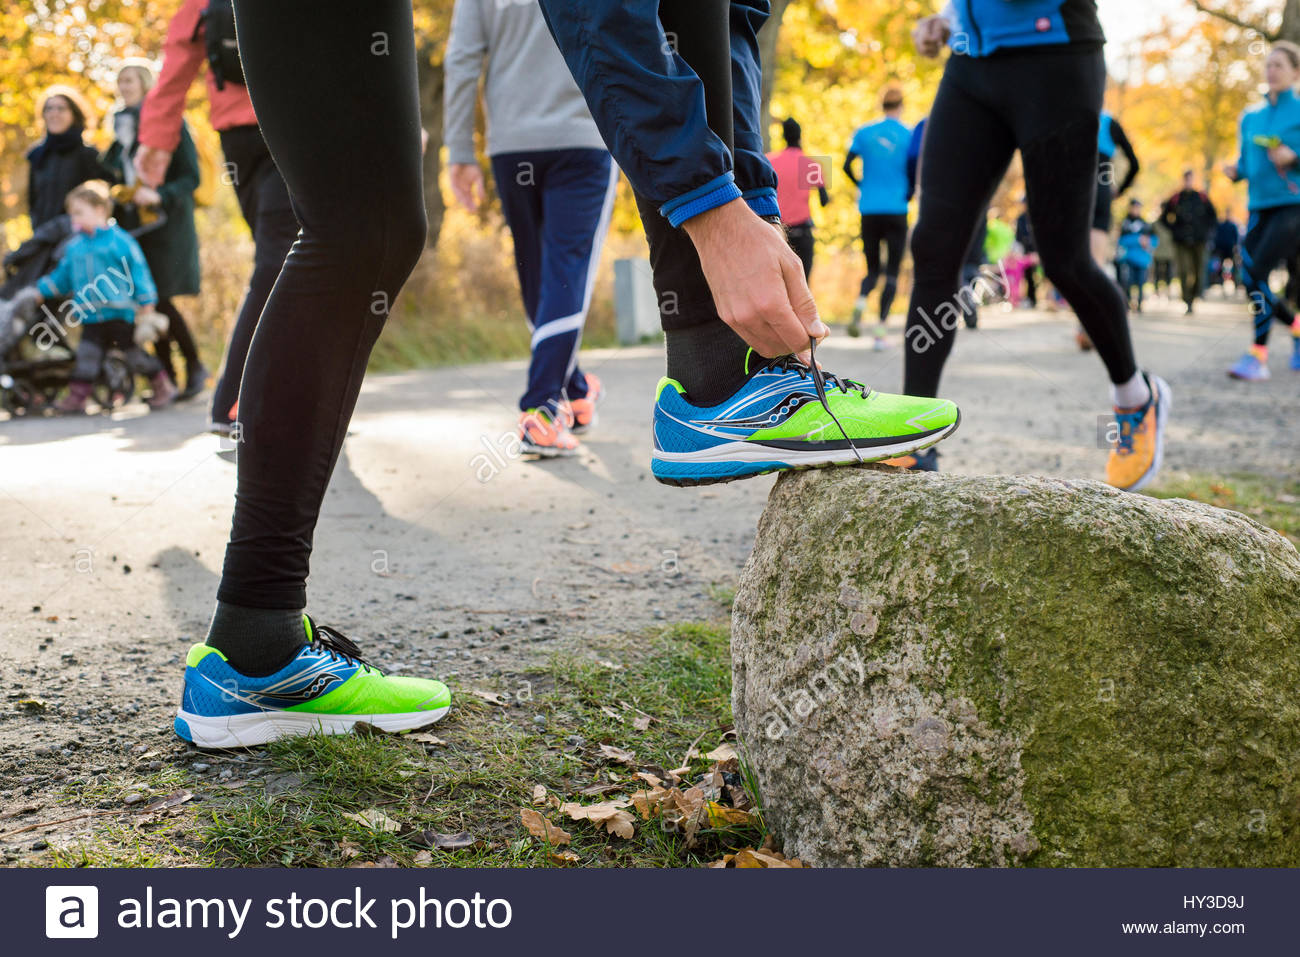 Sweden, Man tying shoe in park - Stock Image